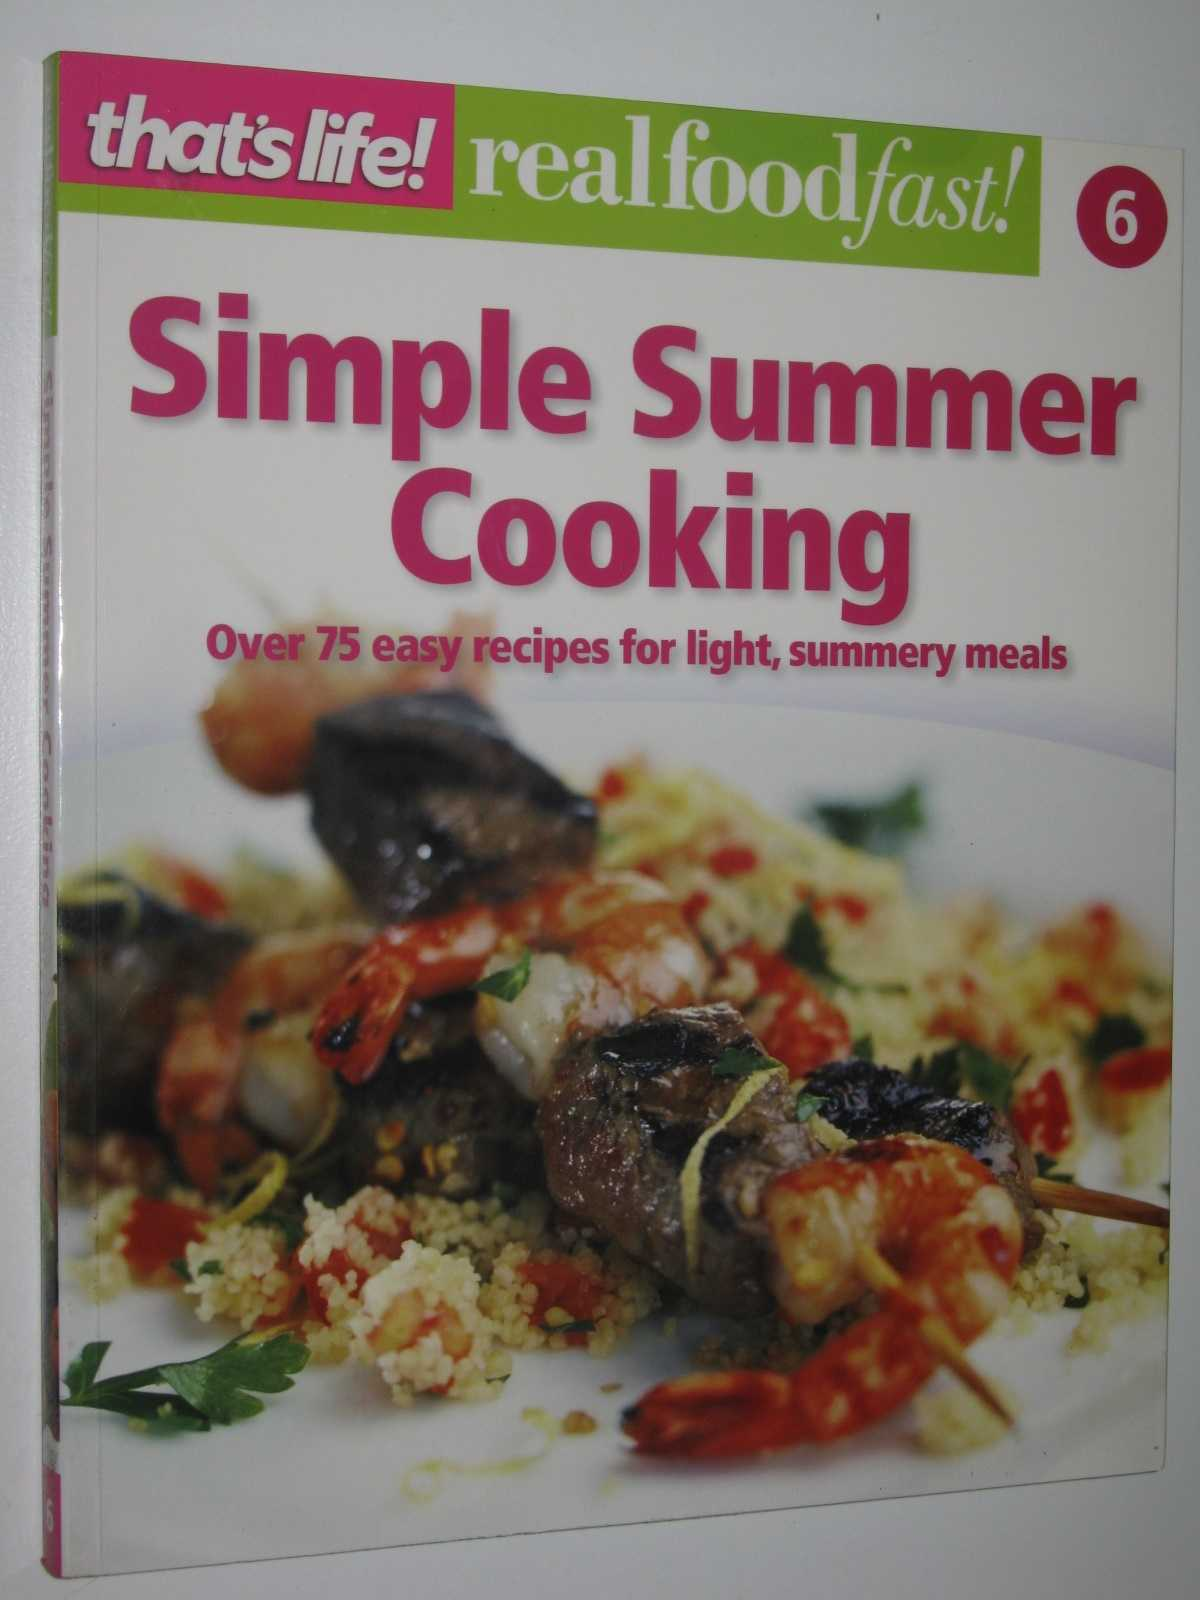 Image for Simple Summer Cooking - Real Food Fast! Series #6